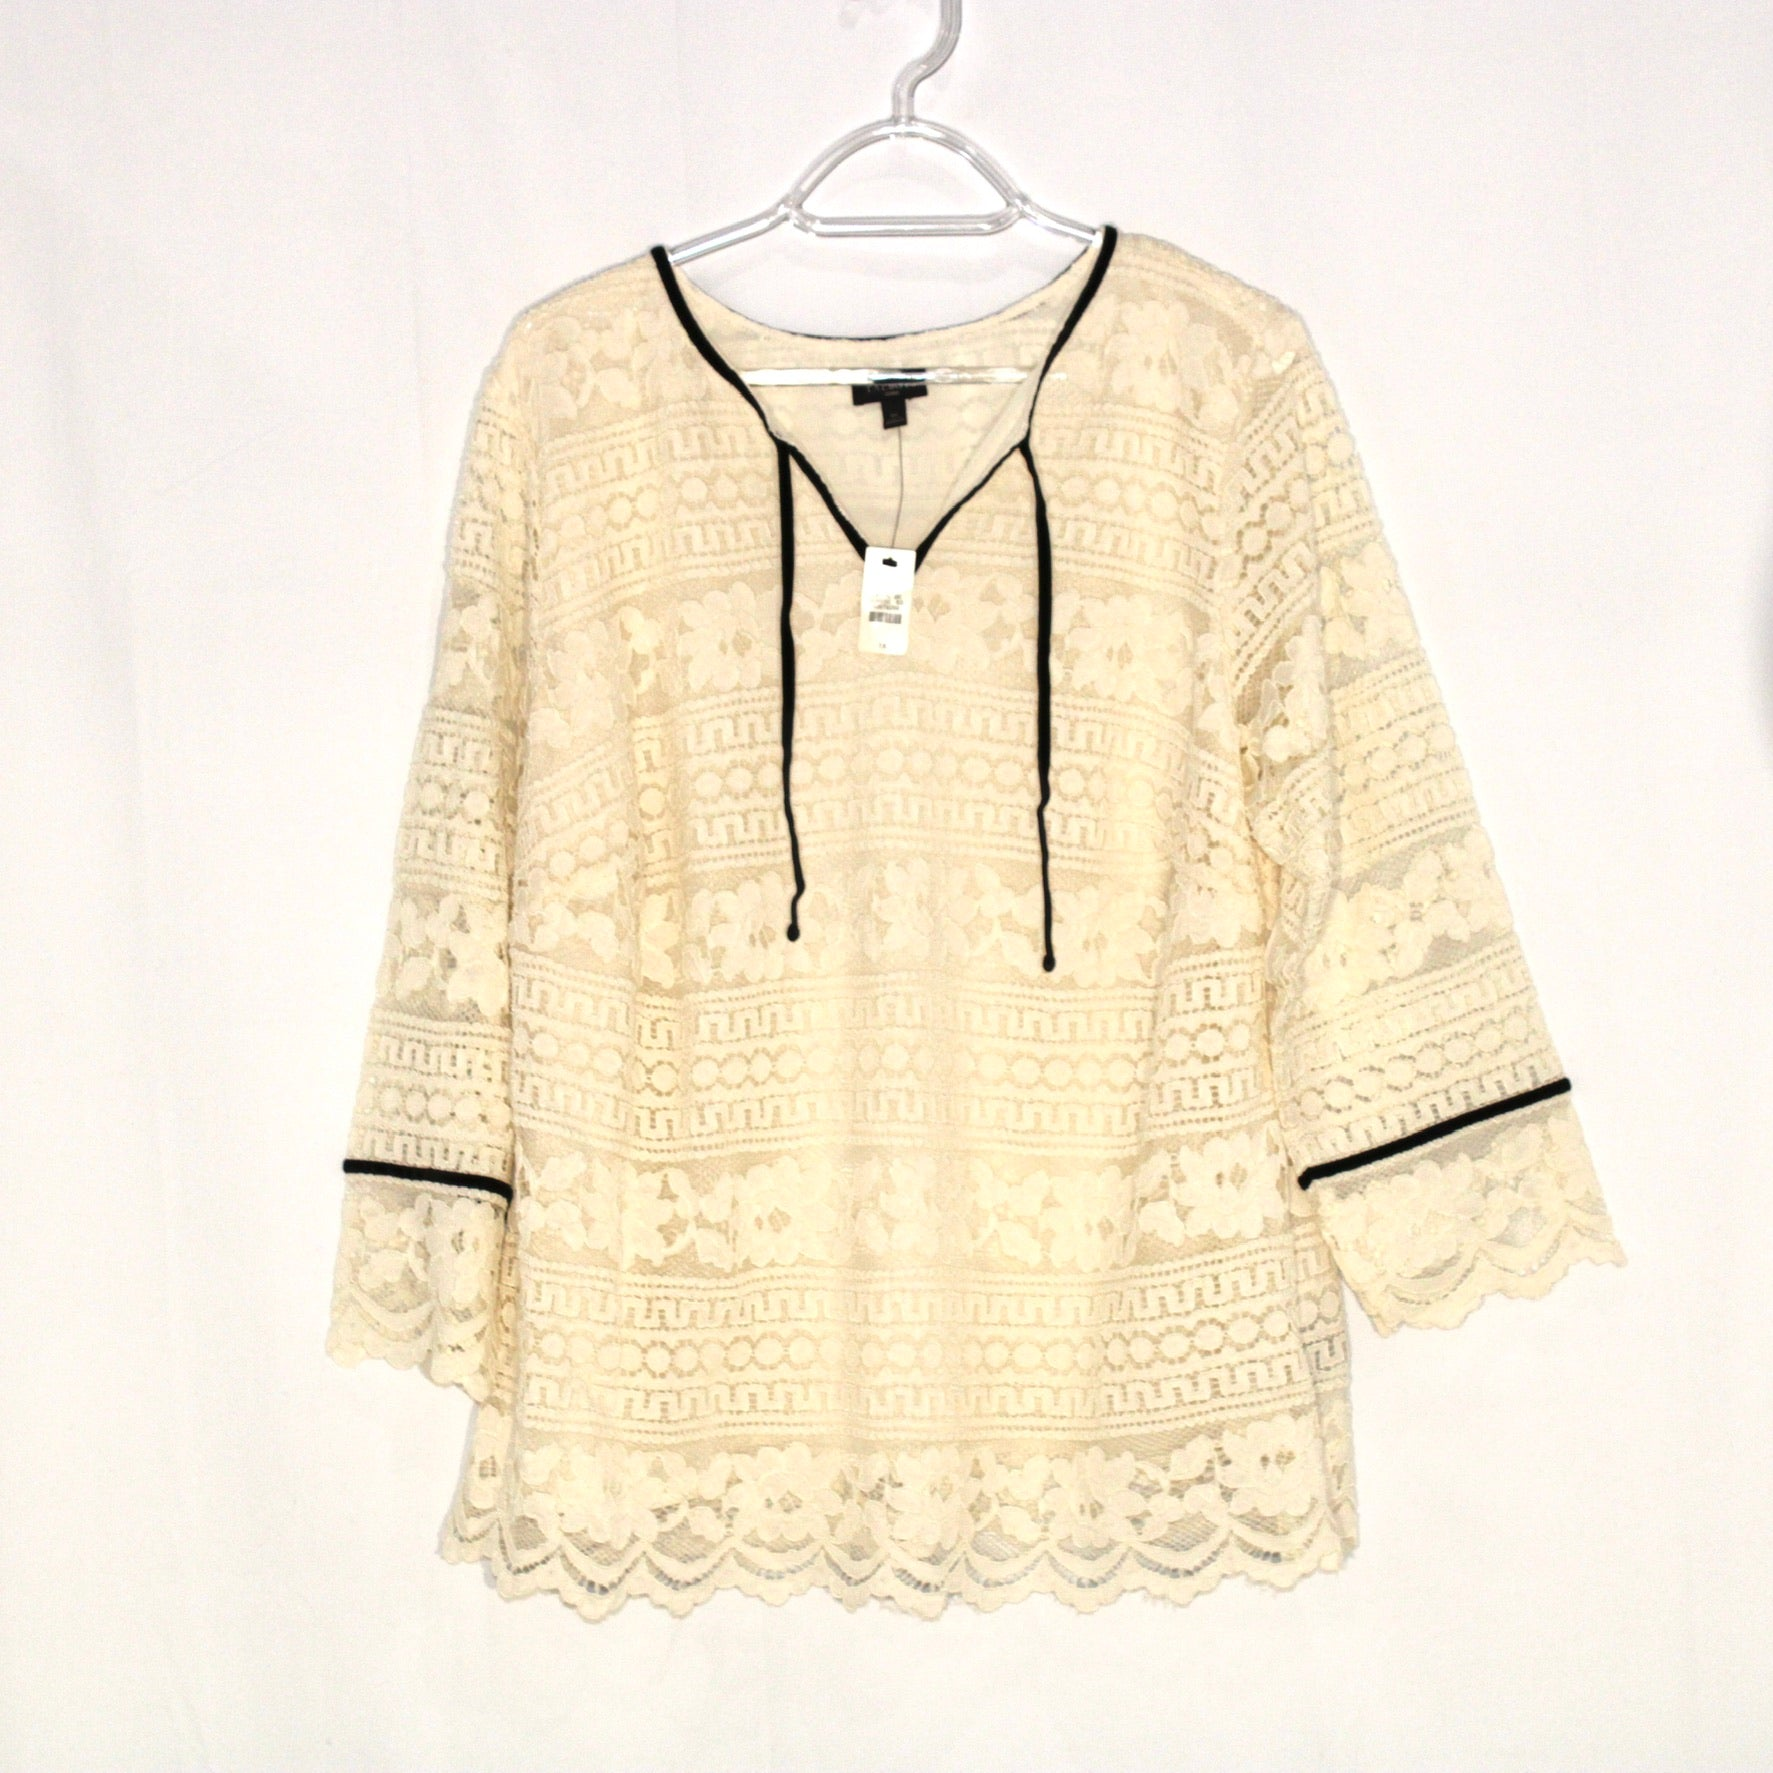 Primary Photo - BRAND: TALBOTS <BR>STYLE: BLOUSE<BR>COLOR: CREAM <BR>SIZE: 1X <BR>SKU: 262-26275-60592